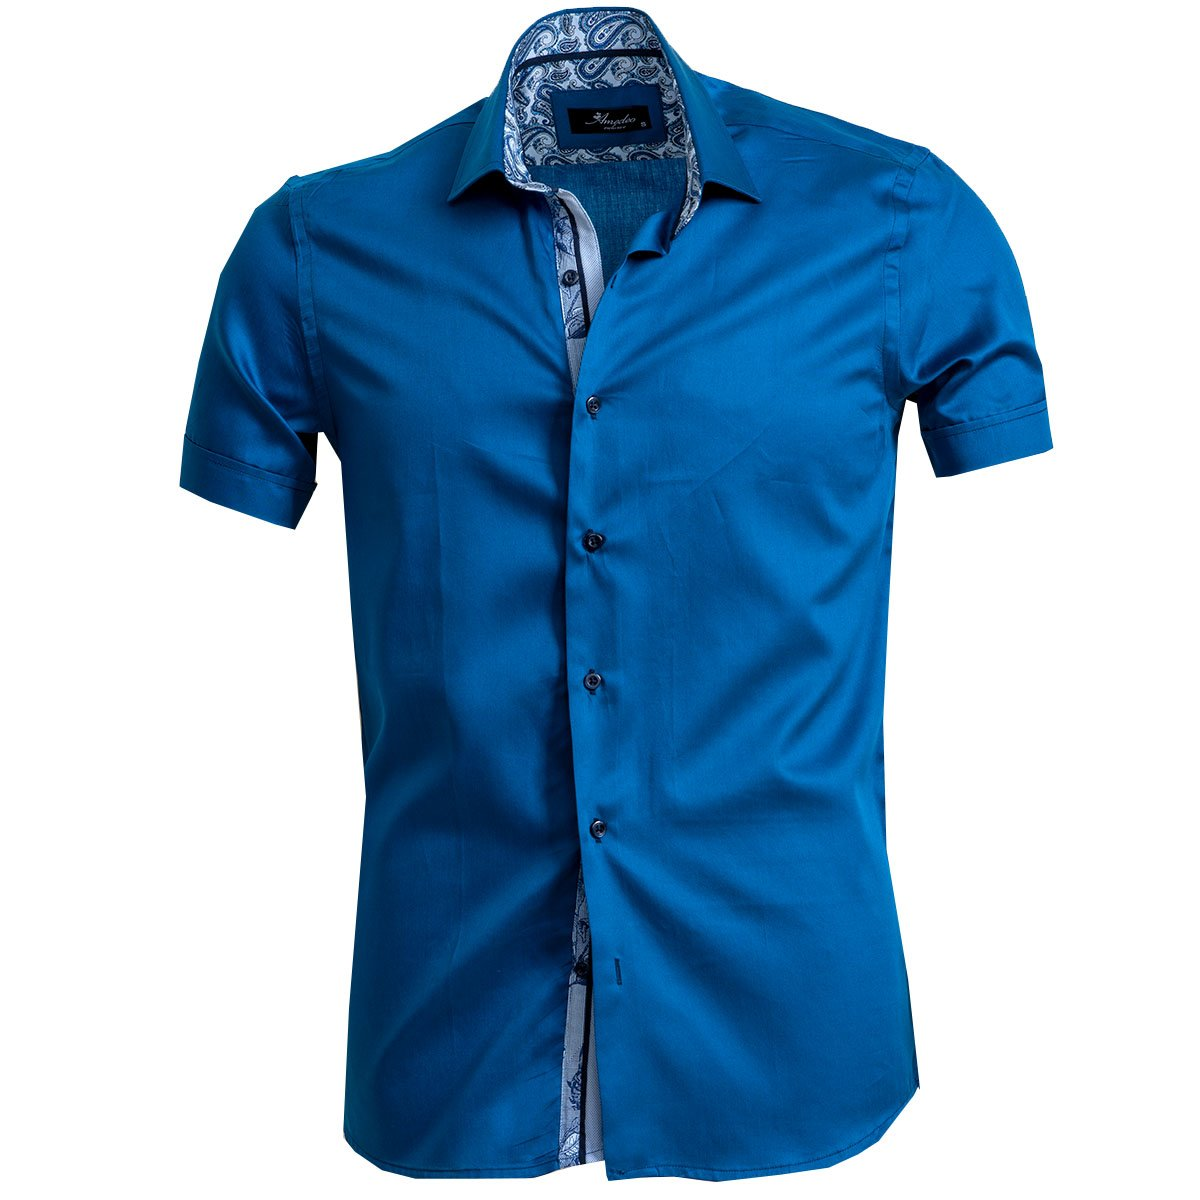 Men's Button down Tailor Fit Soft 100% Cotton Short Sleeve Dress Shirt Solid Medium Blue casual And Formal - Amedeo Exclusive